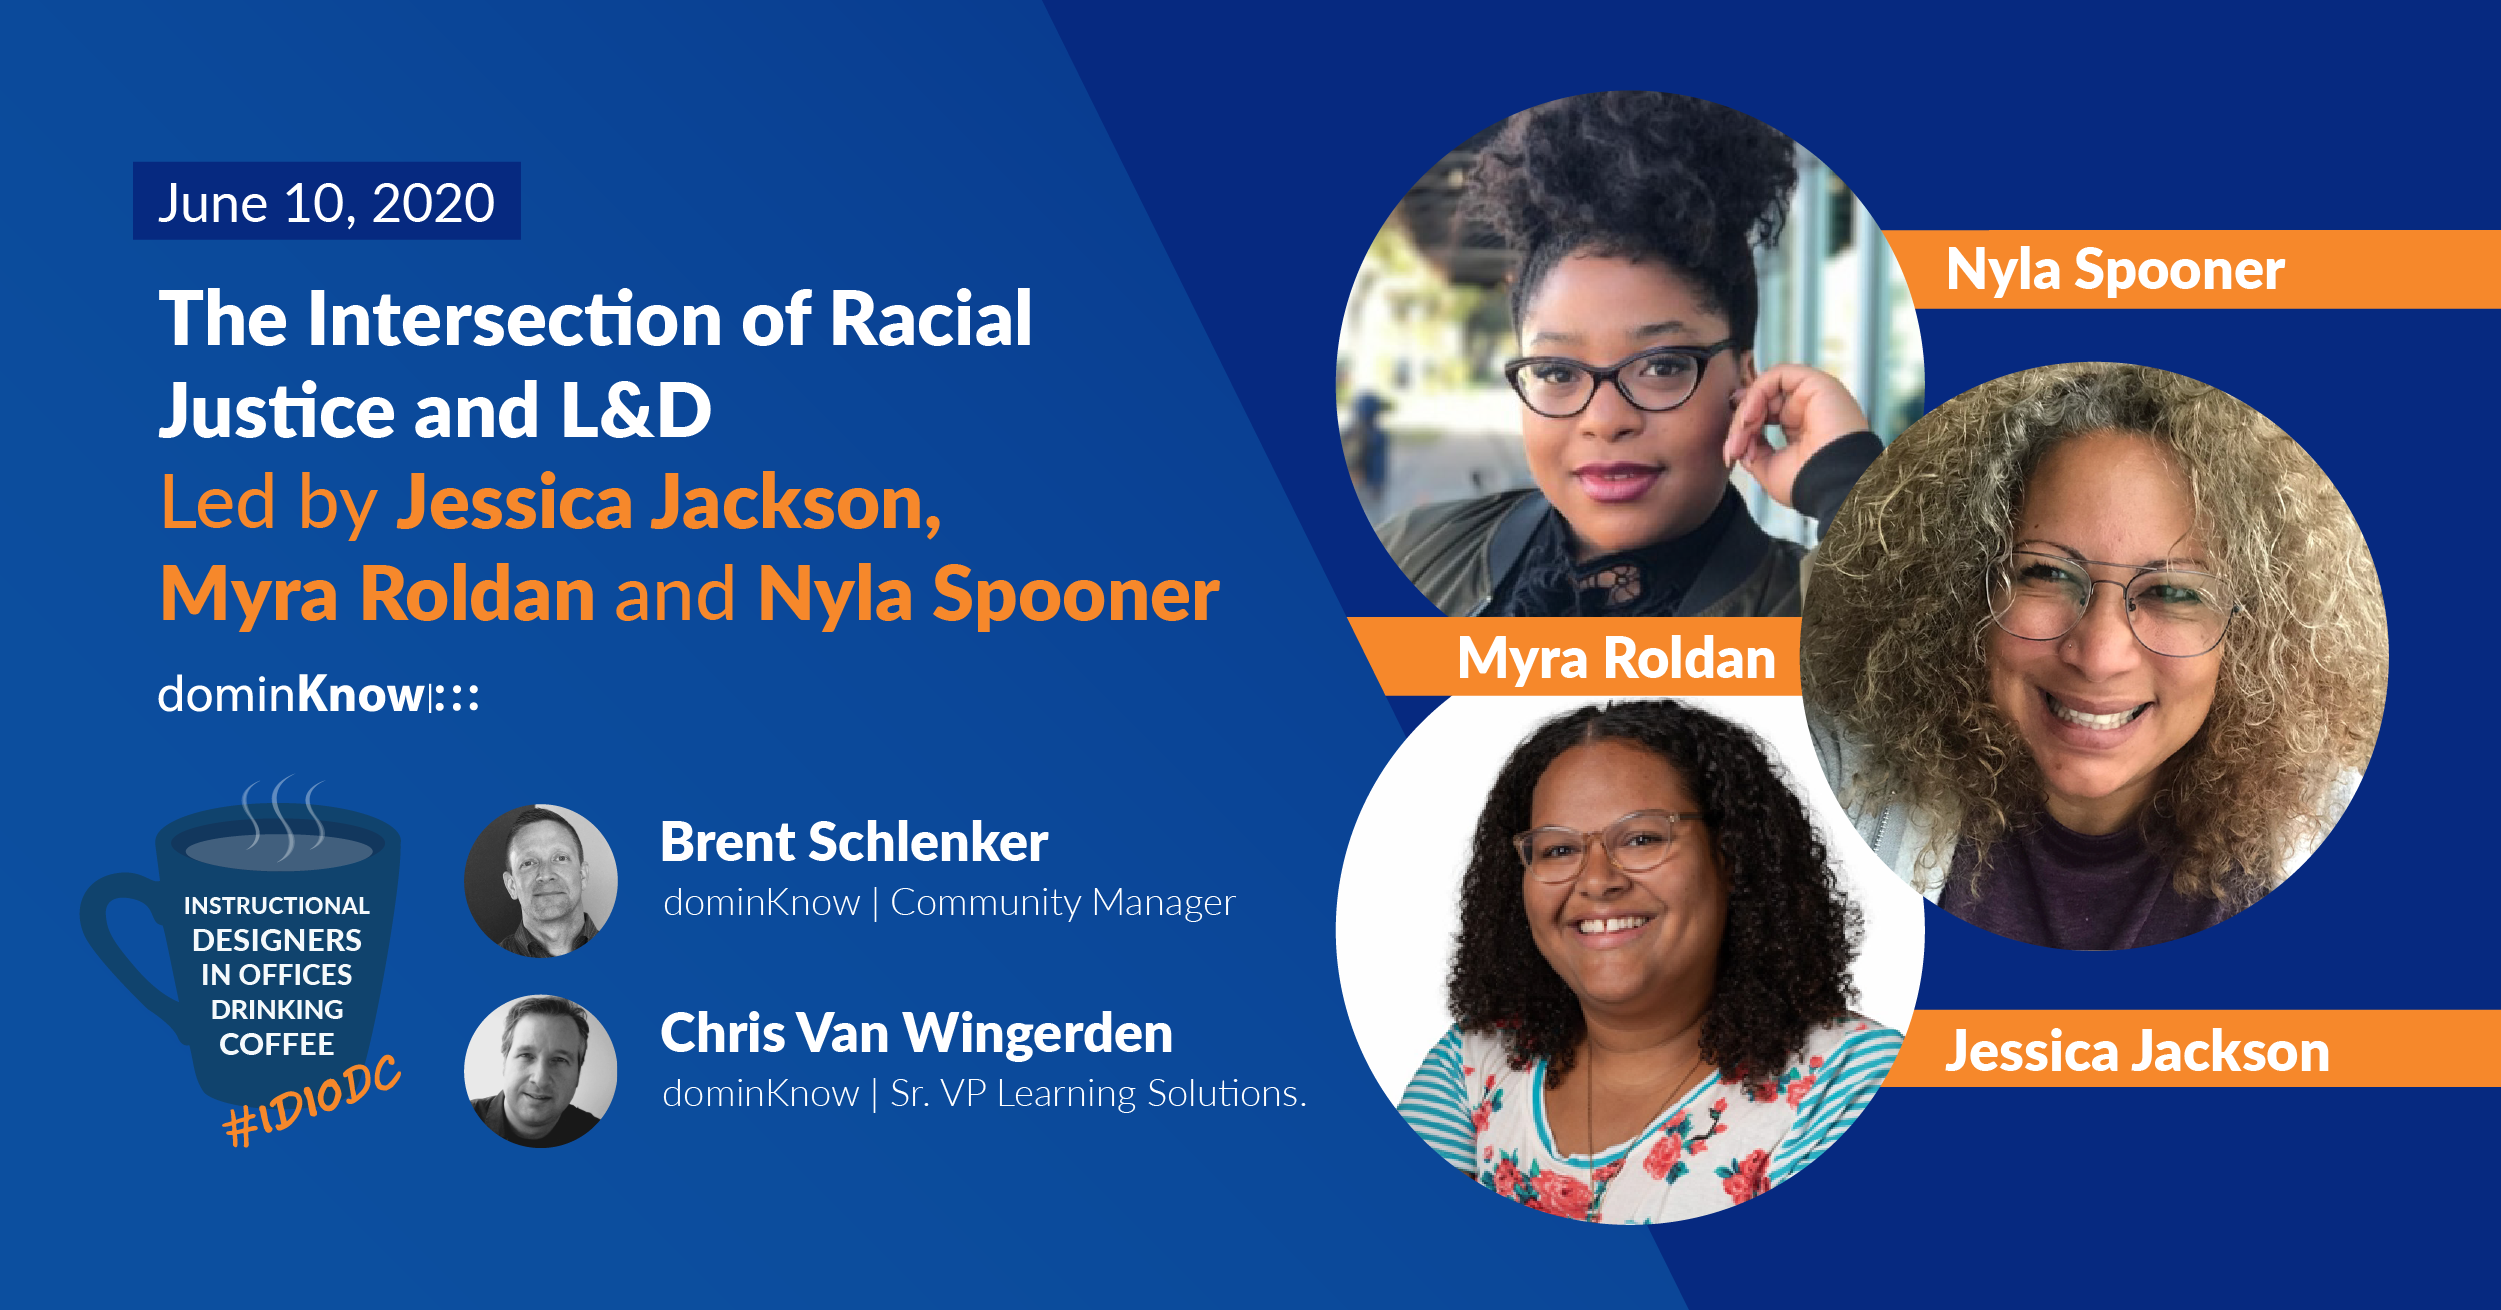 we invite black voices to share their experiences in the L&D field and the ways they are using and asking you to use resources to respond to racial injustice.